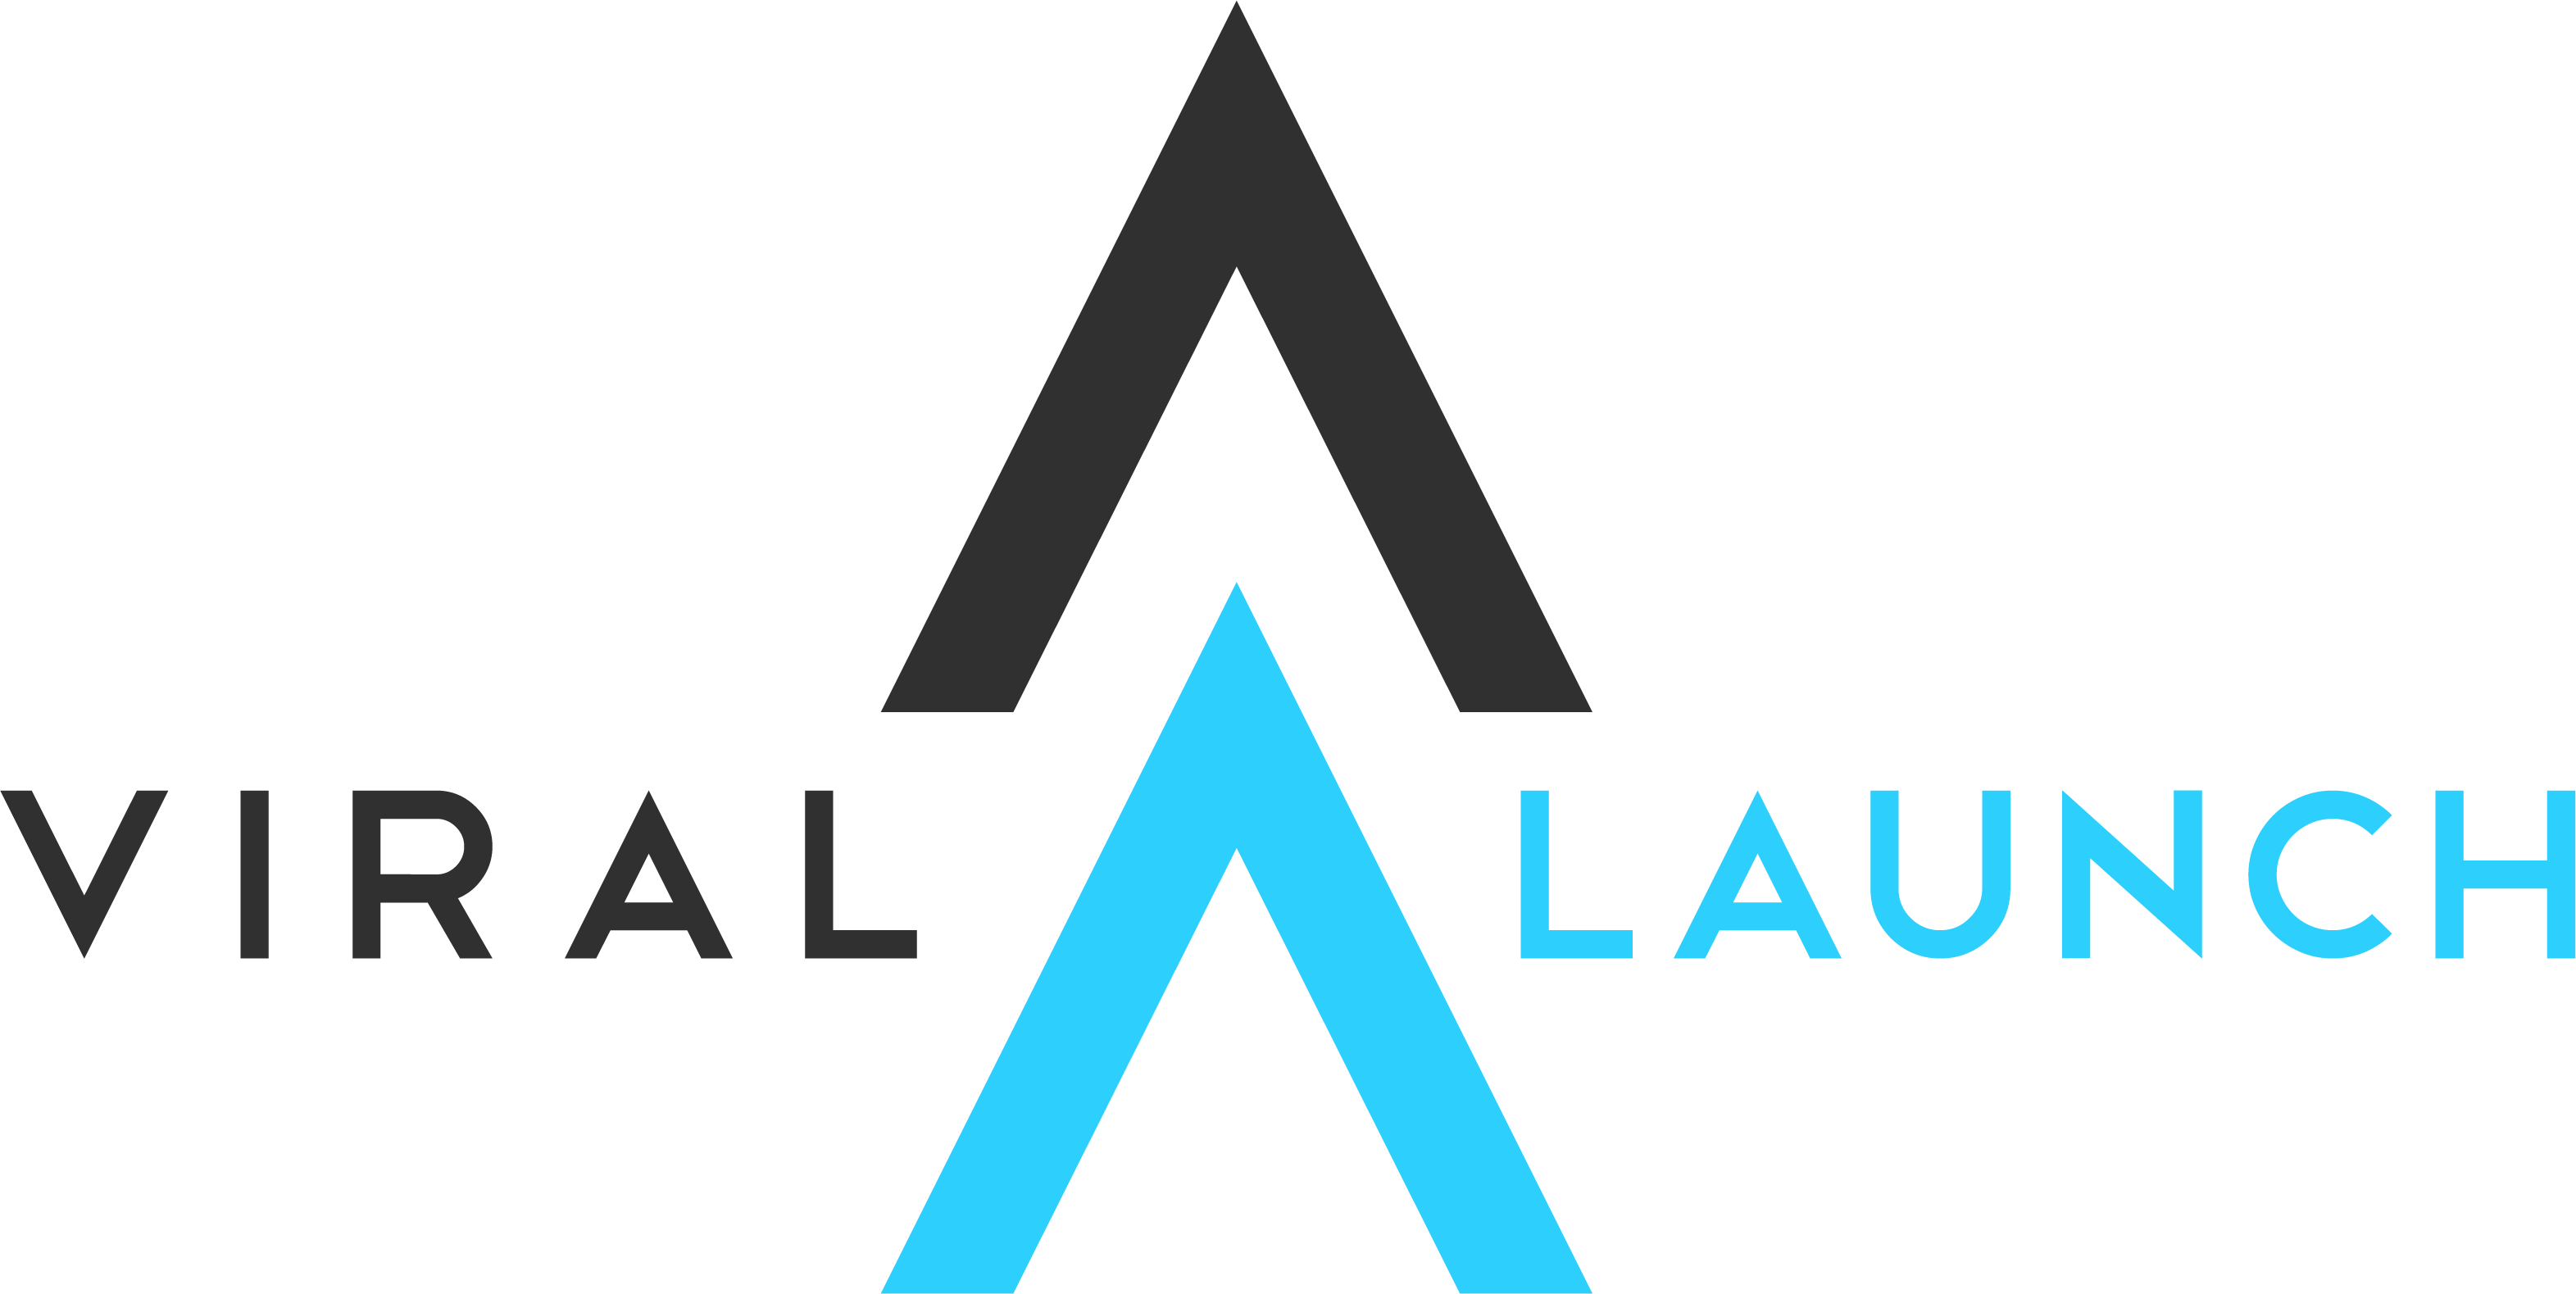 20% off Viral Launch for Monthly or 40% off Annual